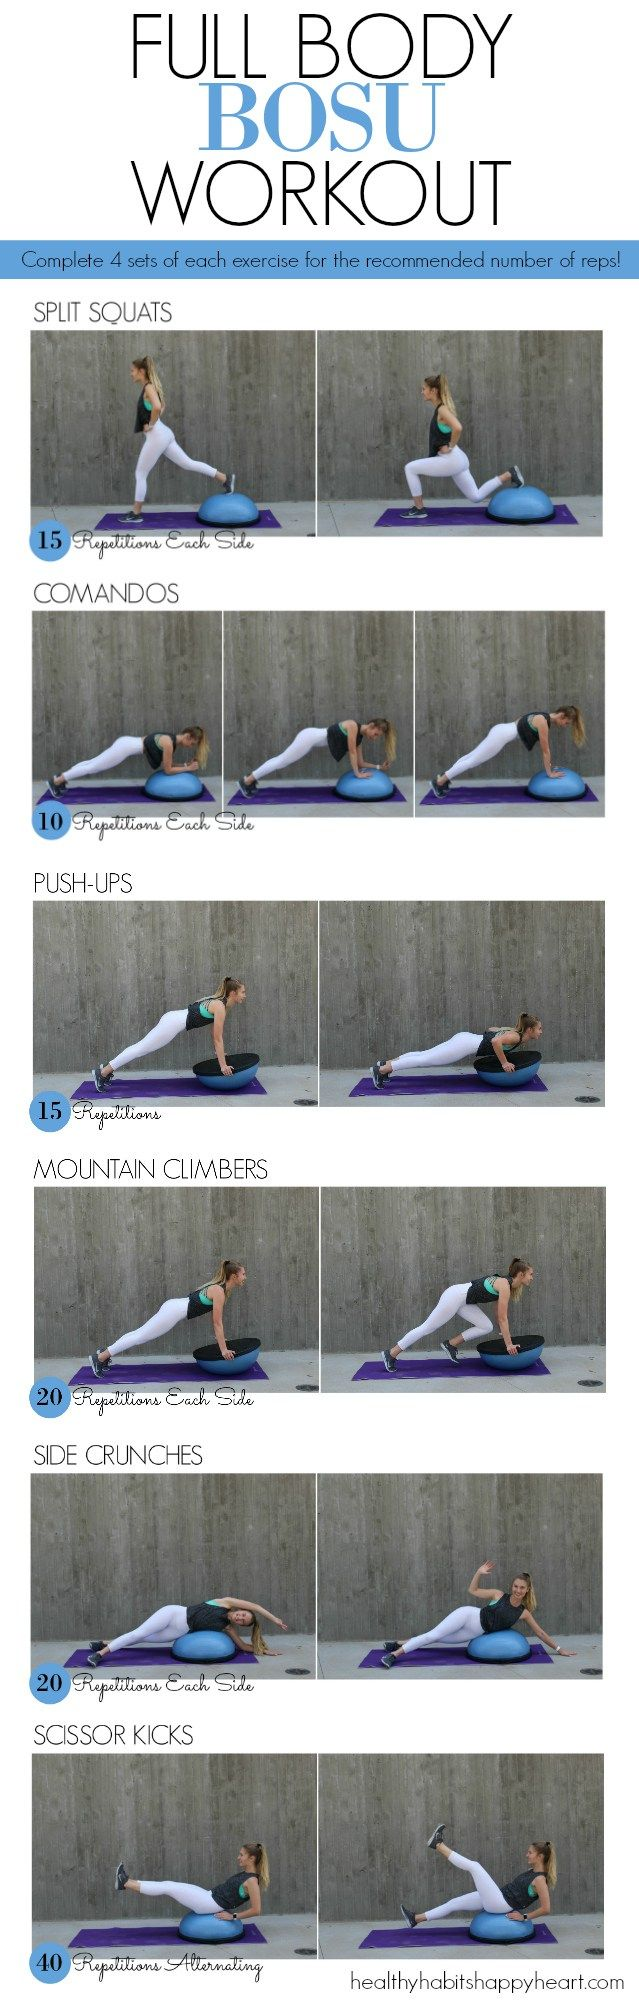 Full Body BOSU ball Workout!| Posted By: CustomWeightLossProgram.com